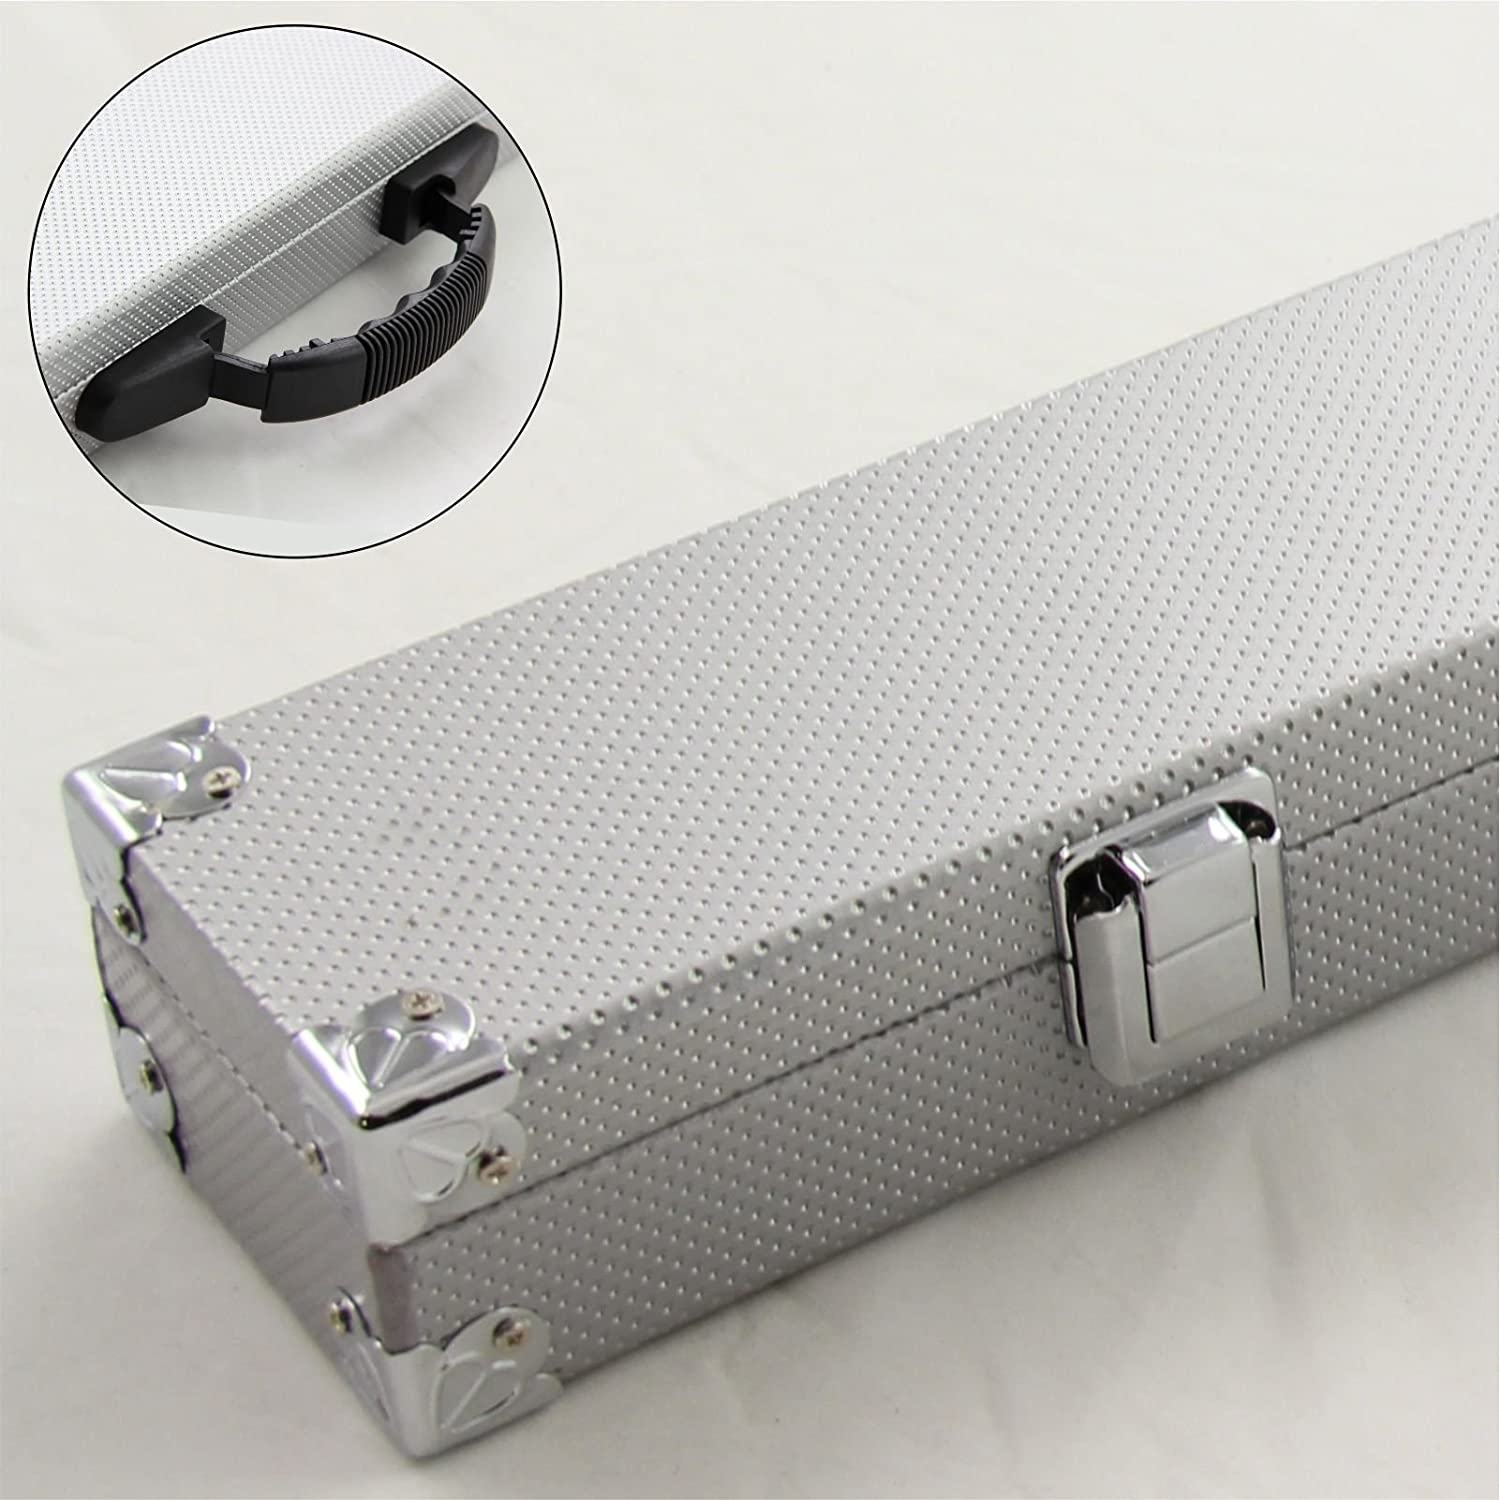 2pc SILVER Cue Case With Reinforced Corners for Snooker Pool Cue by Funky Chalk